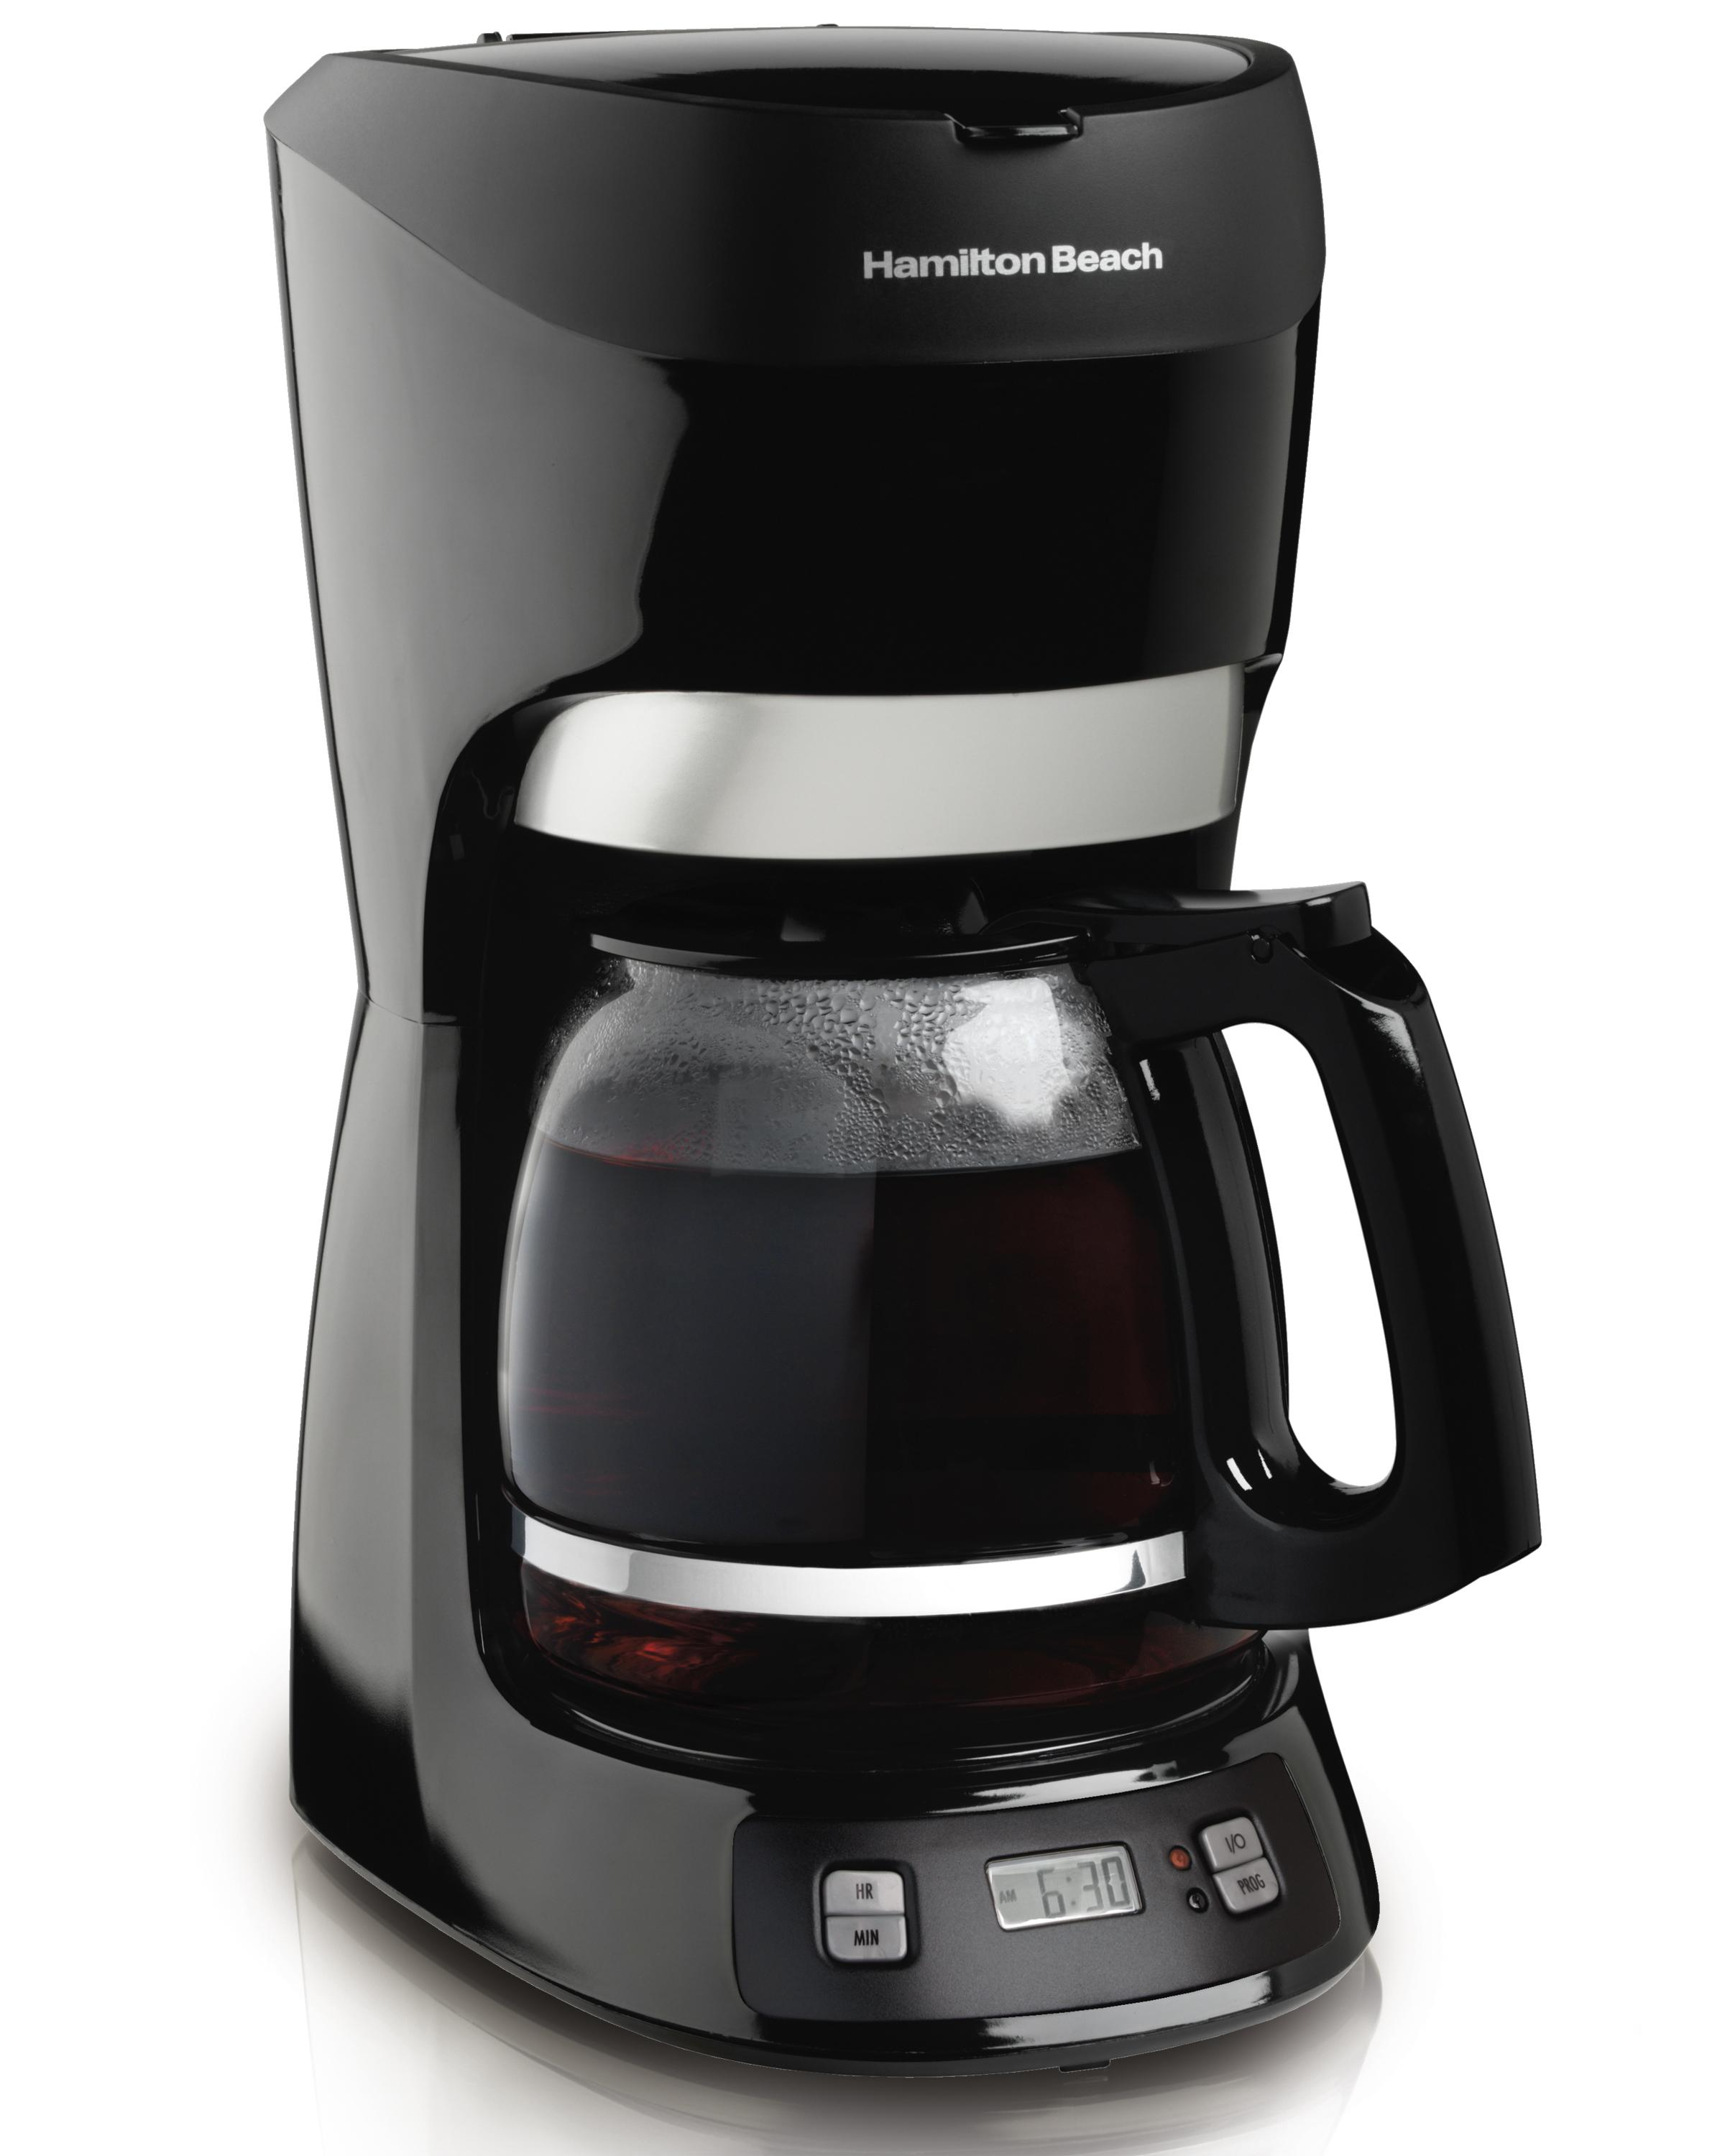 Coffee Maker For Large Groups : Amazon.com: Hamilton Beach 12-Cup Coffee Maker with Digital Clock (49467): Coffee Makers For ...